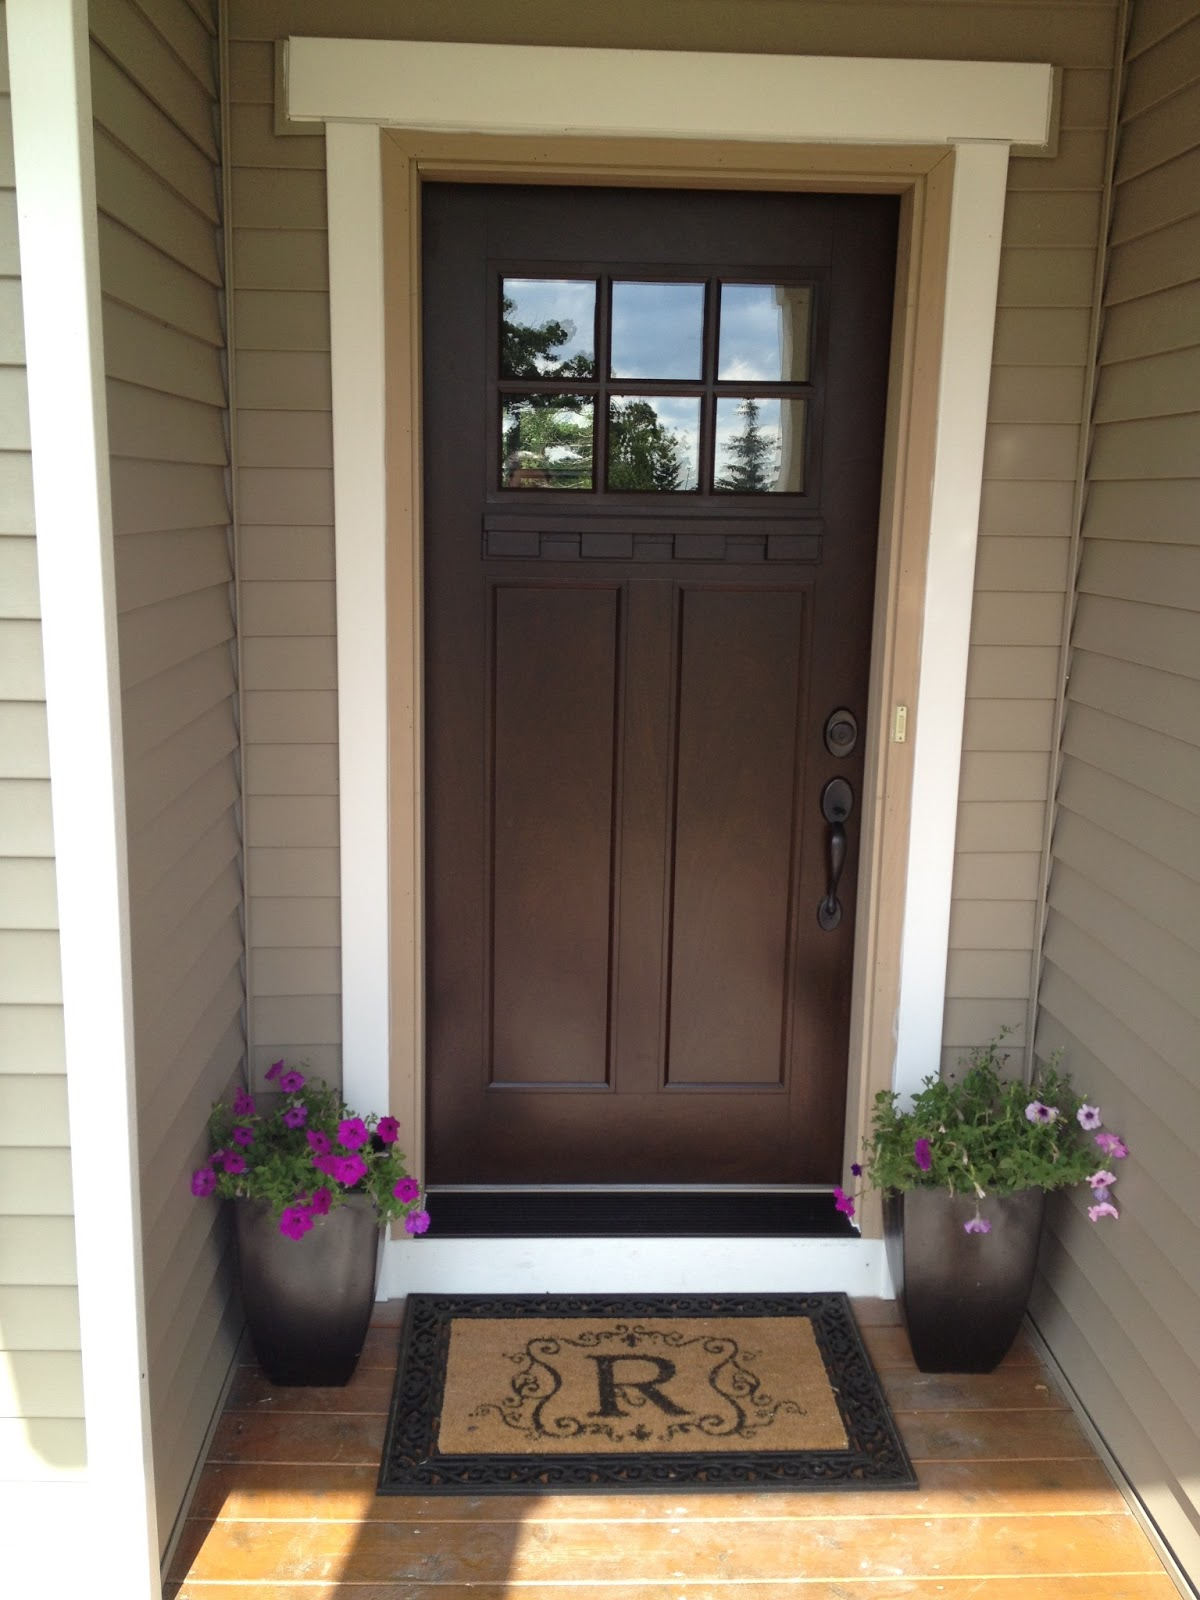 Our styled suburban life new front door for Small house front door ideas